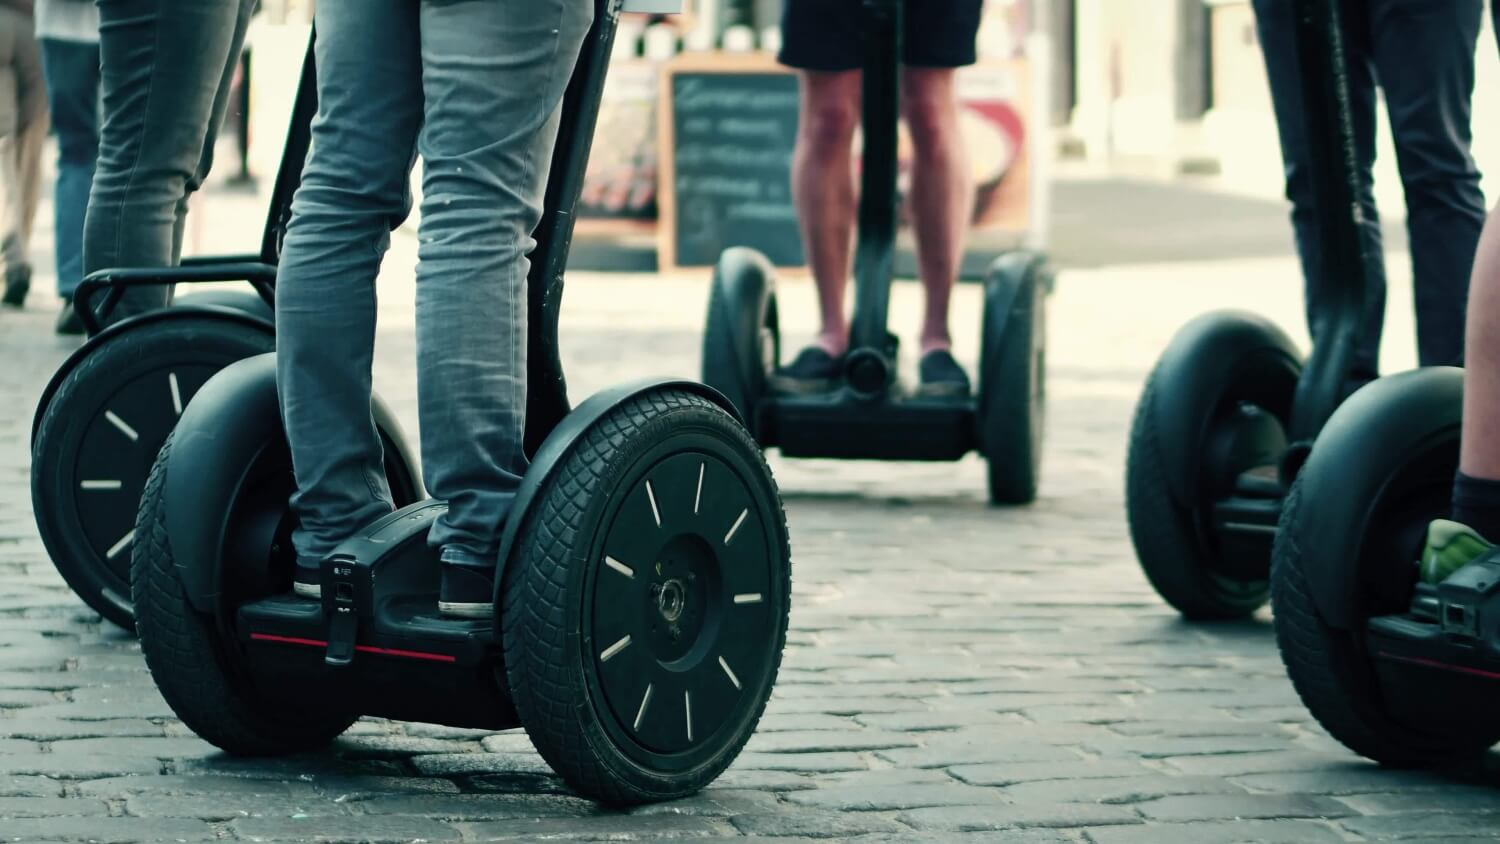 Segway is retiring its iconic scooter that failed to revolutionize personal transportation